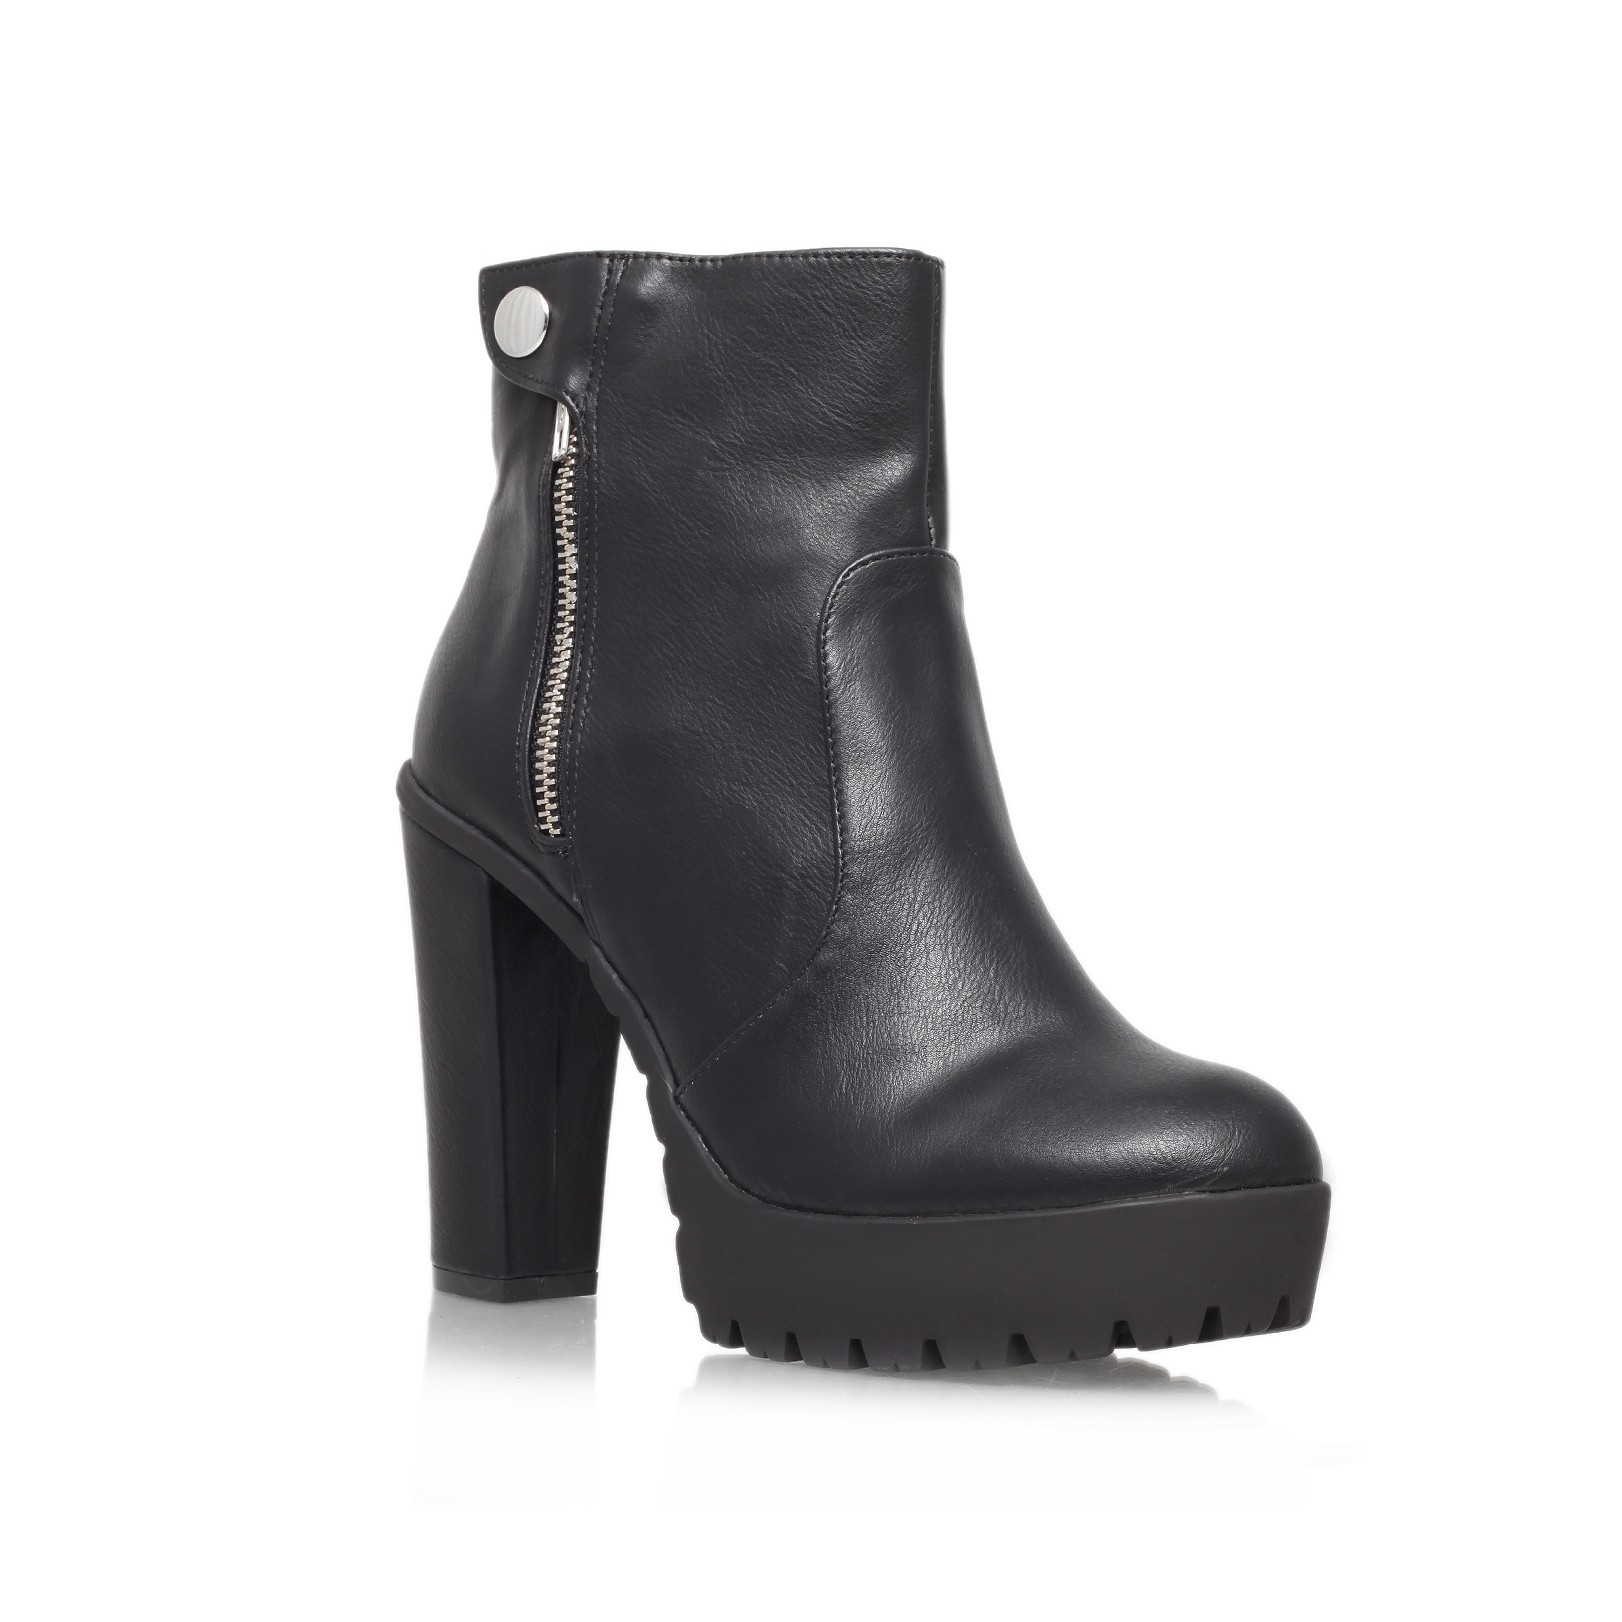 Kurt Geiger | SIMBA Black High Heel Ankle Boots by Miss KG